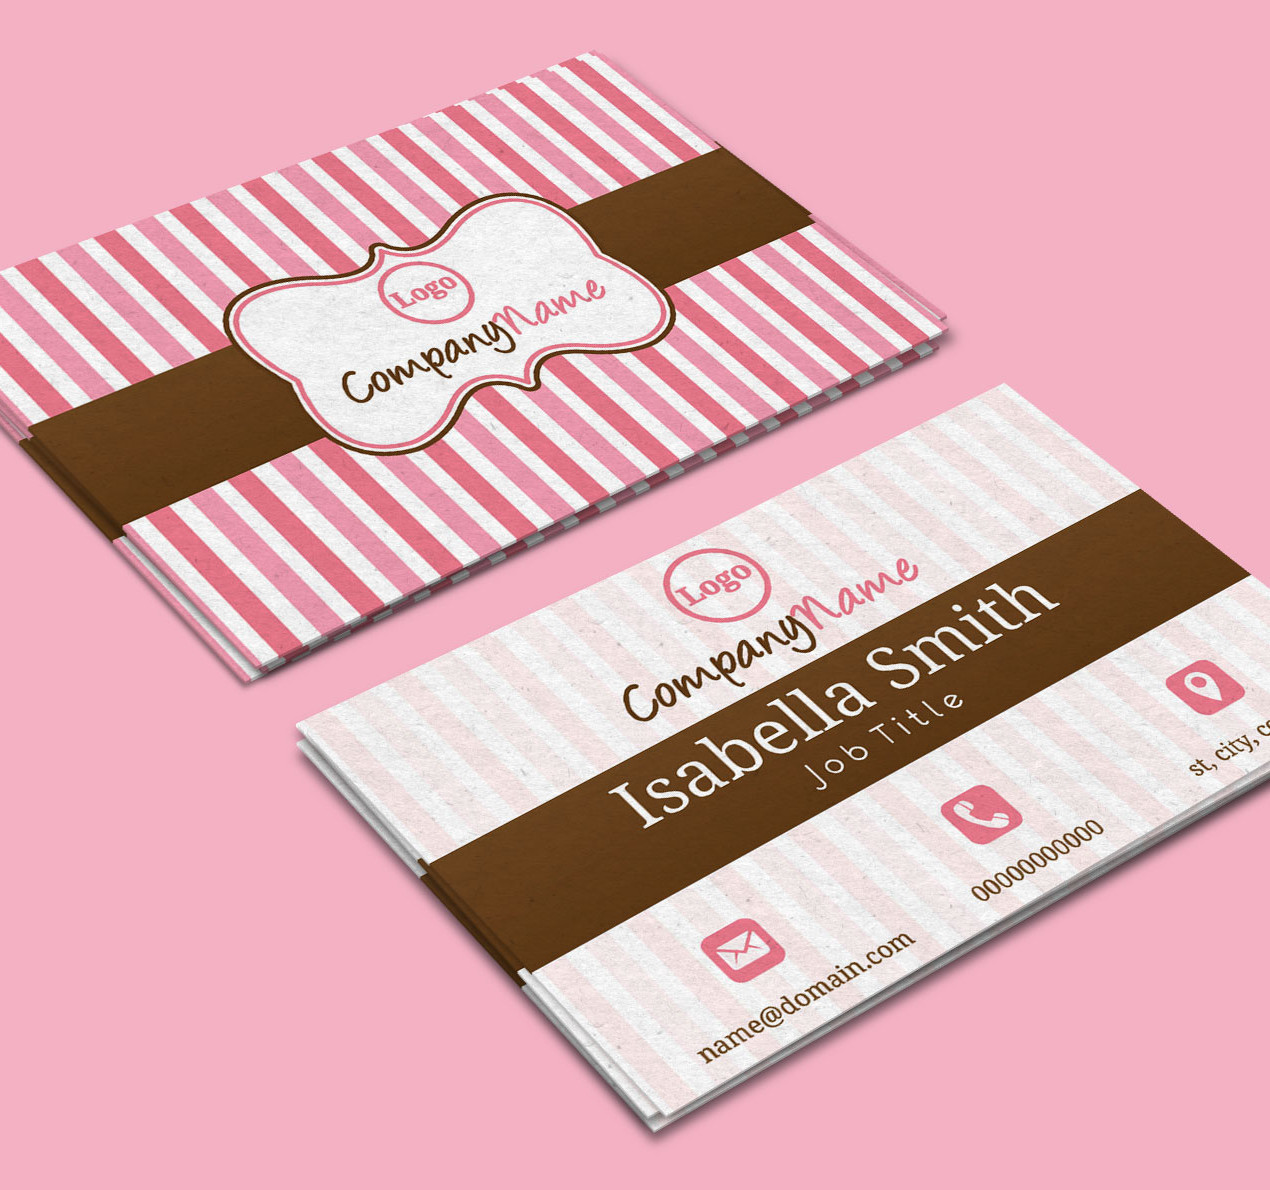 business, business card, business card design, free card, free business card, free business card design, minimalist business card, branding, branding identity, stationery design, cards, card design, business brand, online business card, online business cards, cupcakes, cupcake, baker, bakery, dessert, confectionery, sweets, pink